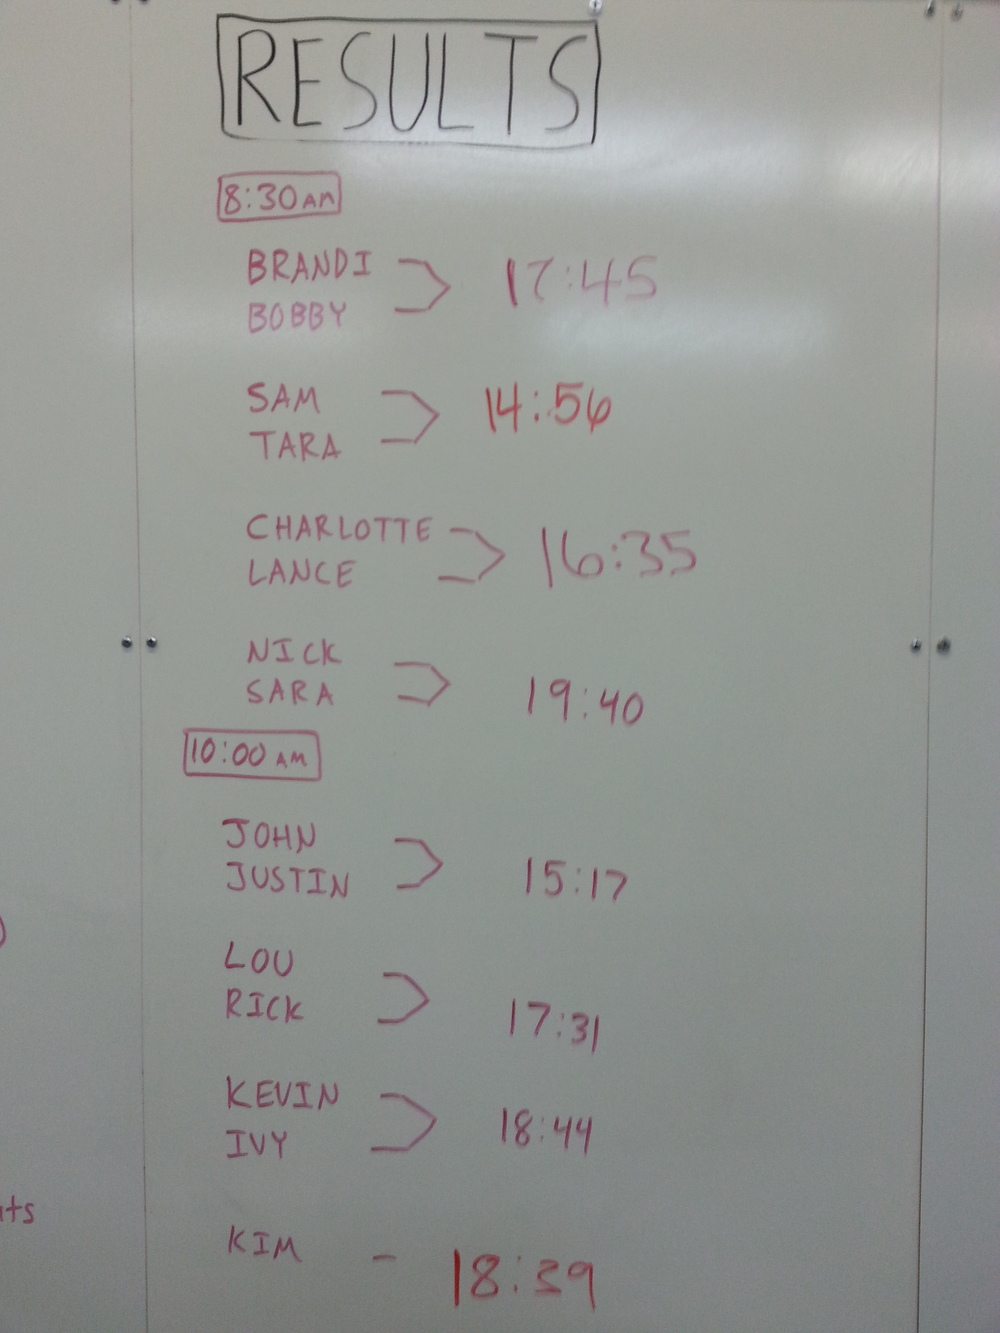 Results from Saturday's Team WOD!